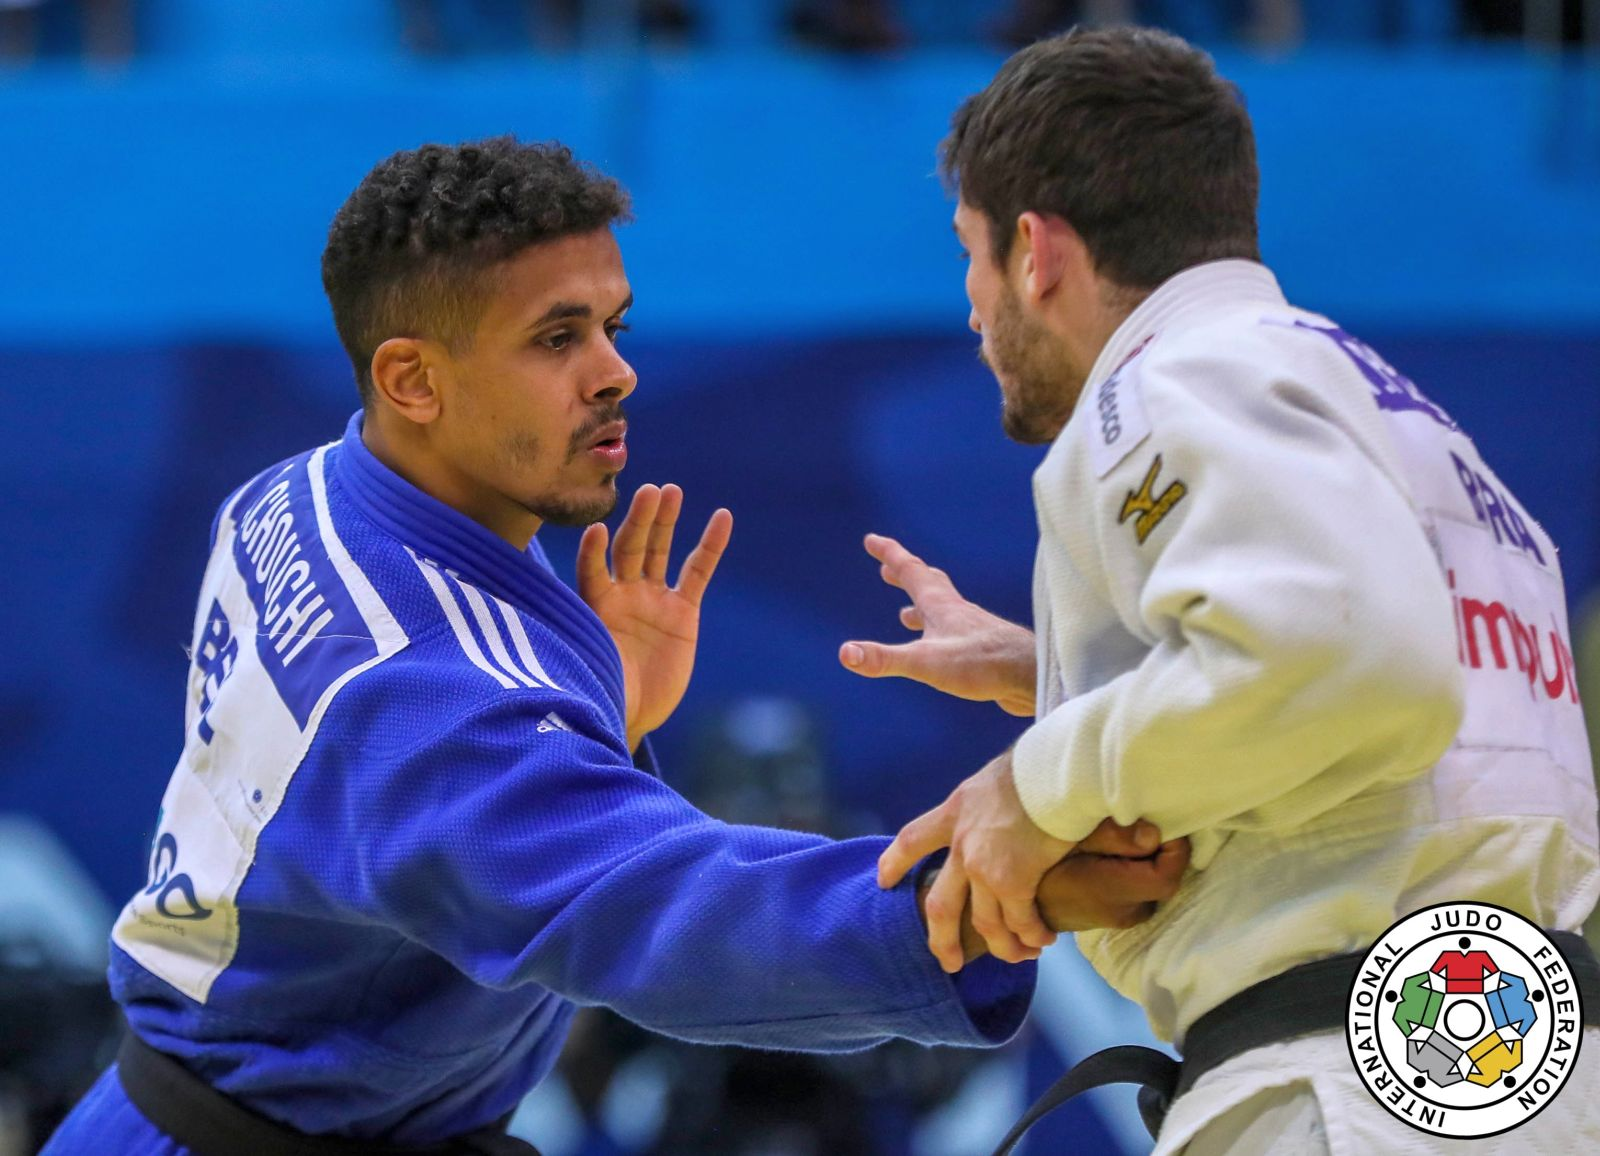 20181013_ijf_cancun_81_final_chouchi_sami